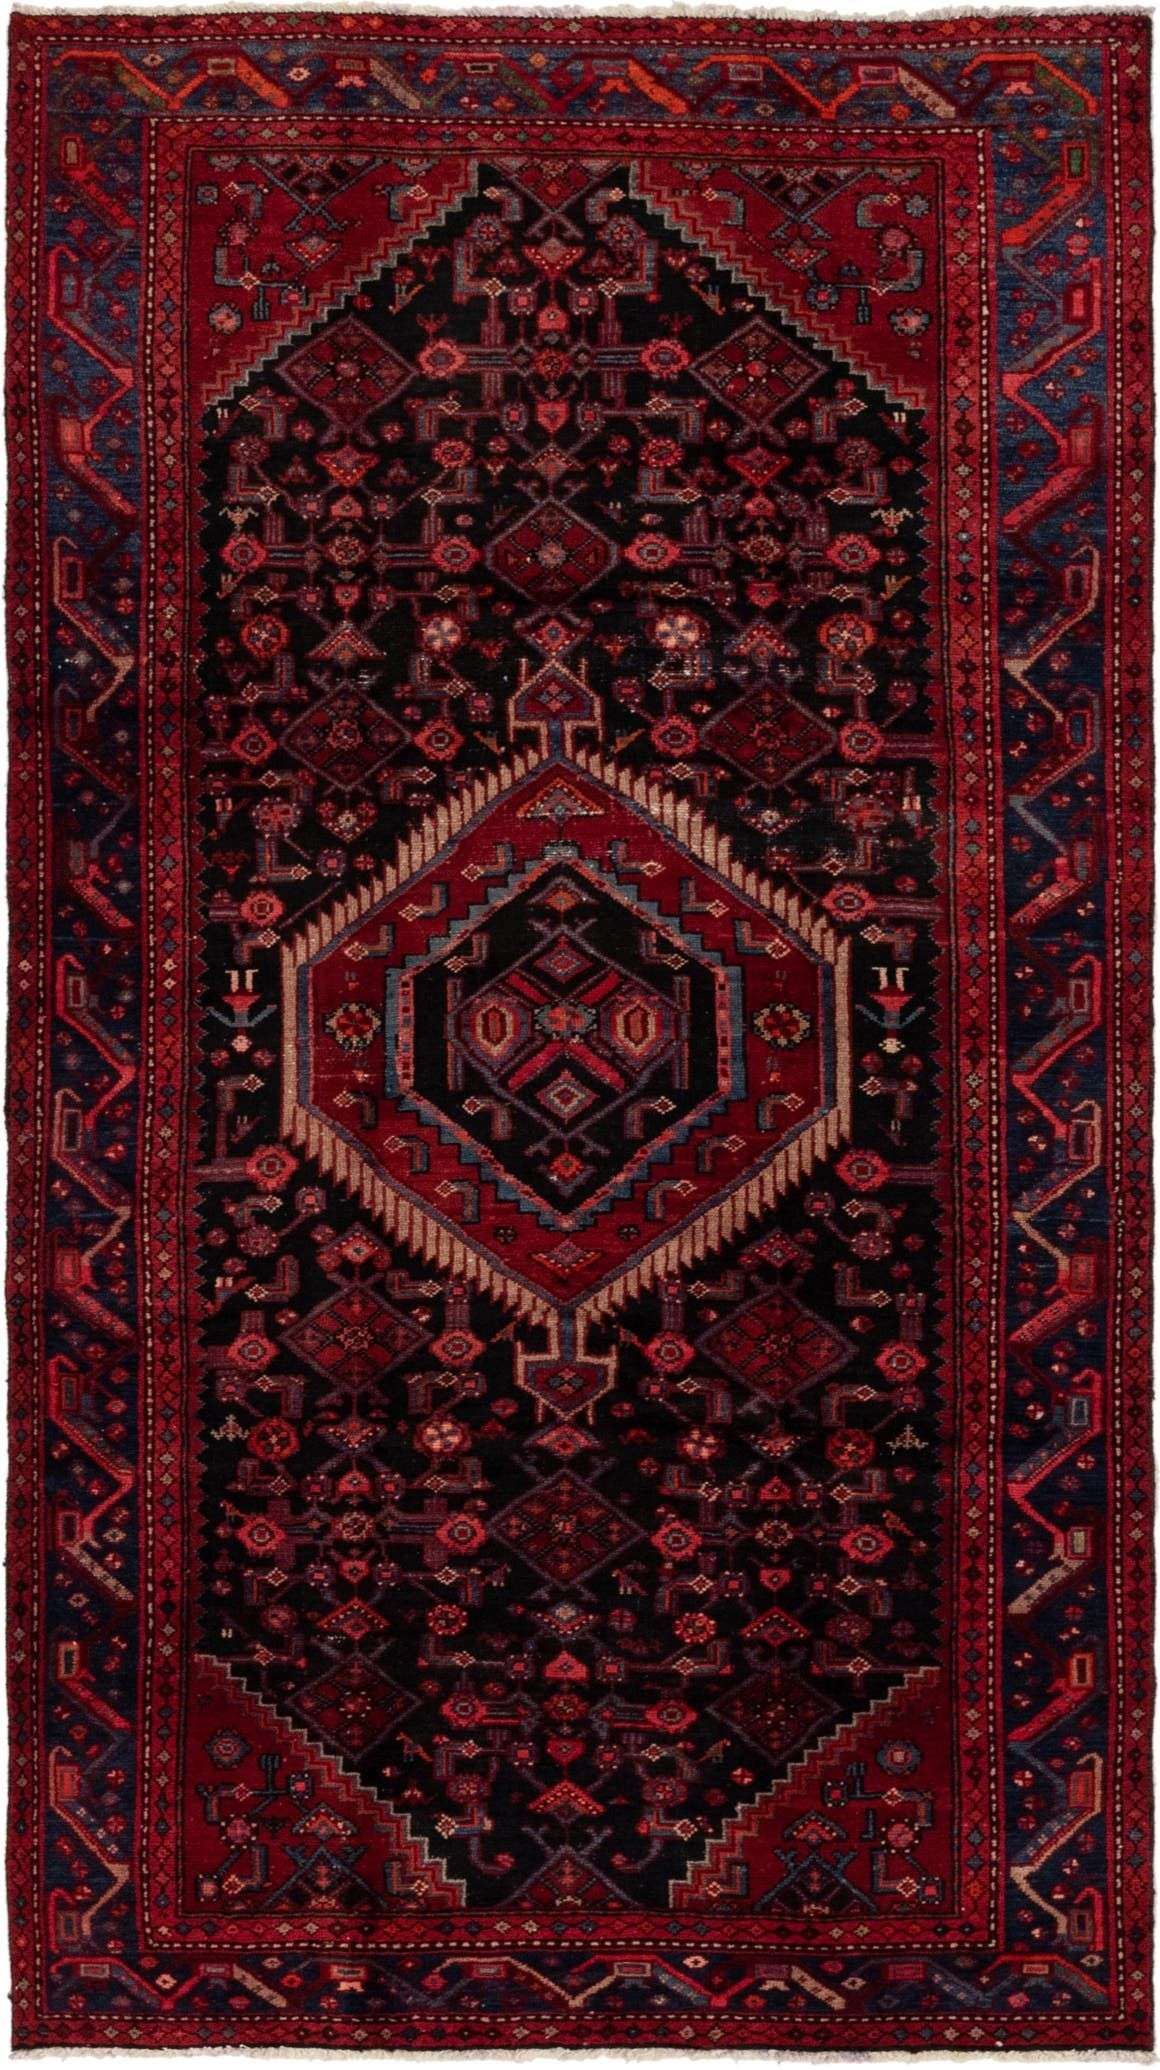 Darjazin Black Antique 5x8 Area Rug In 2020 Rugs Persian Rug 5x8 Area Rugs